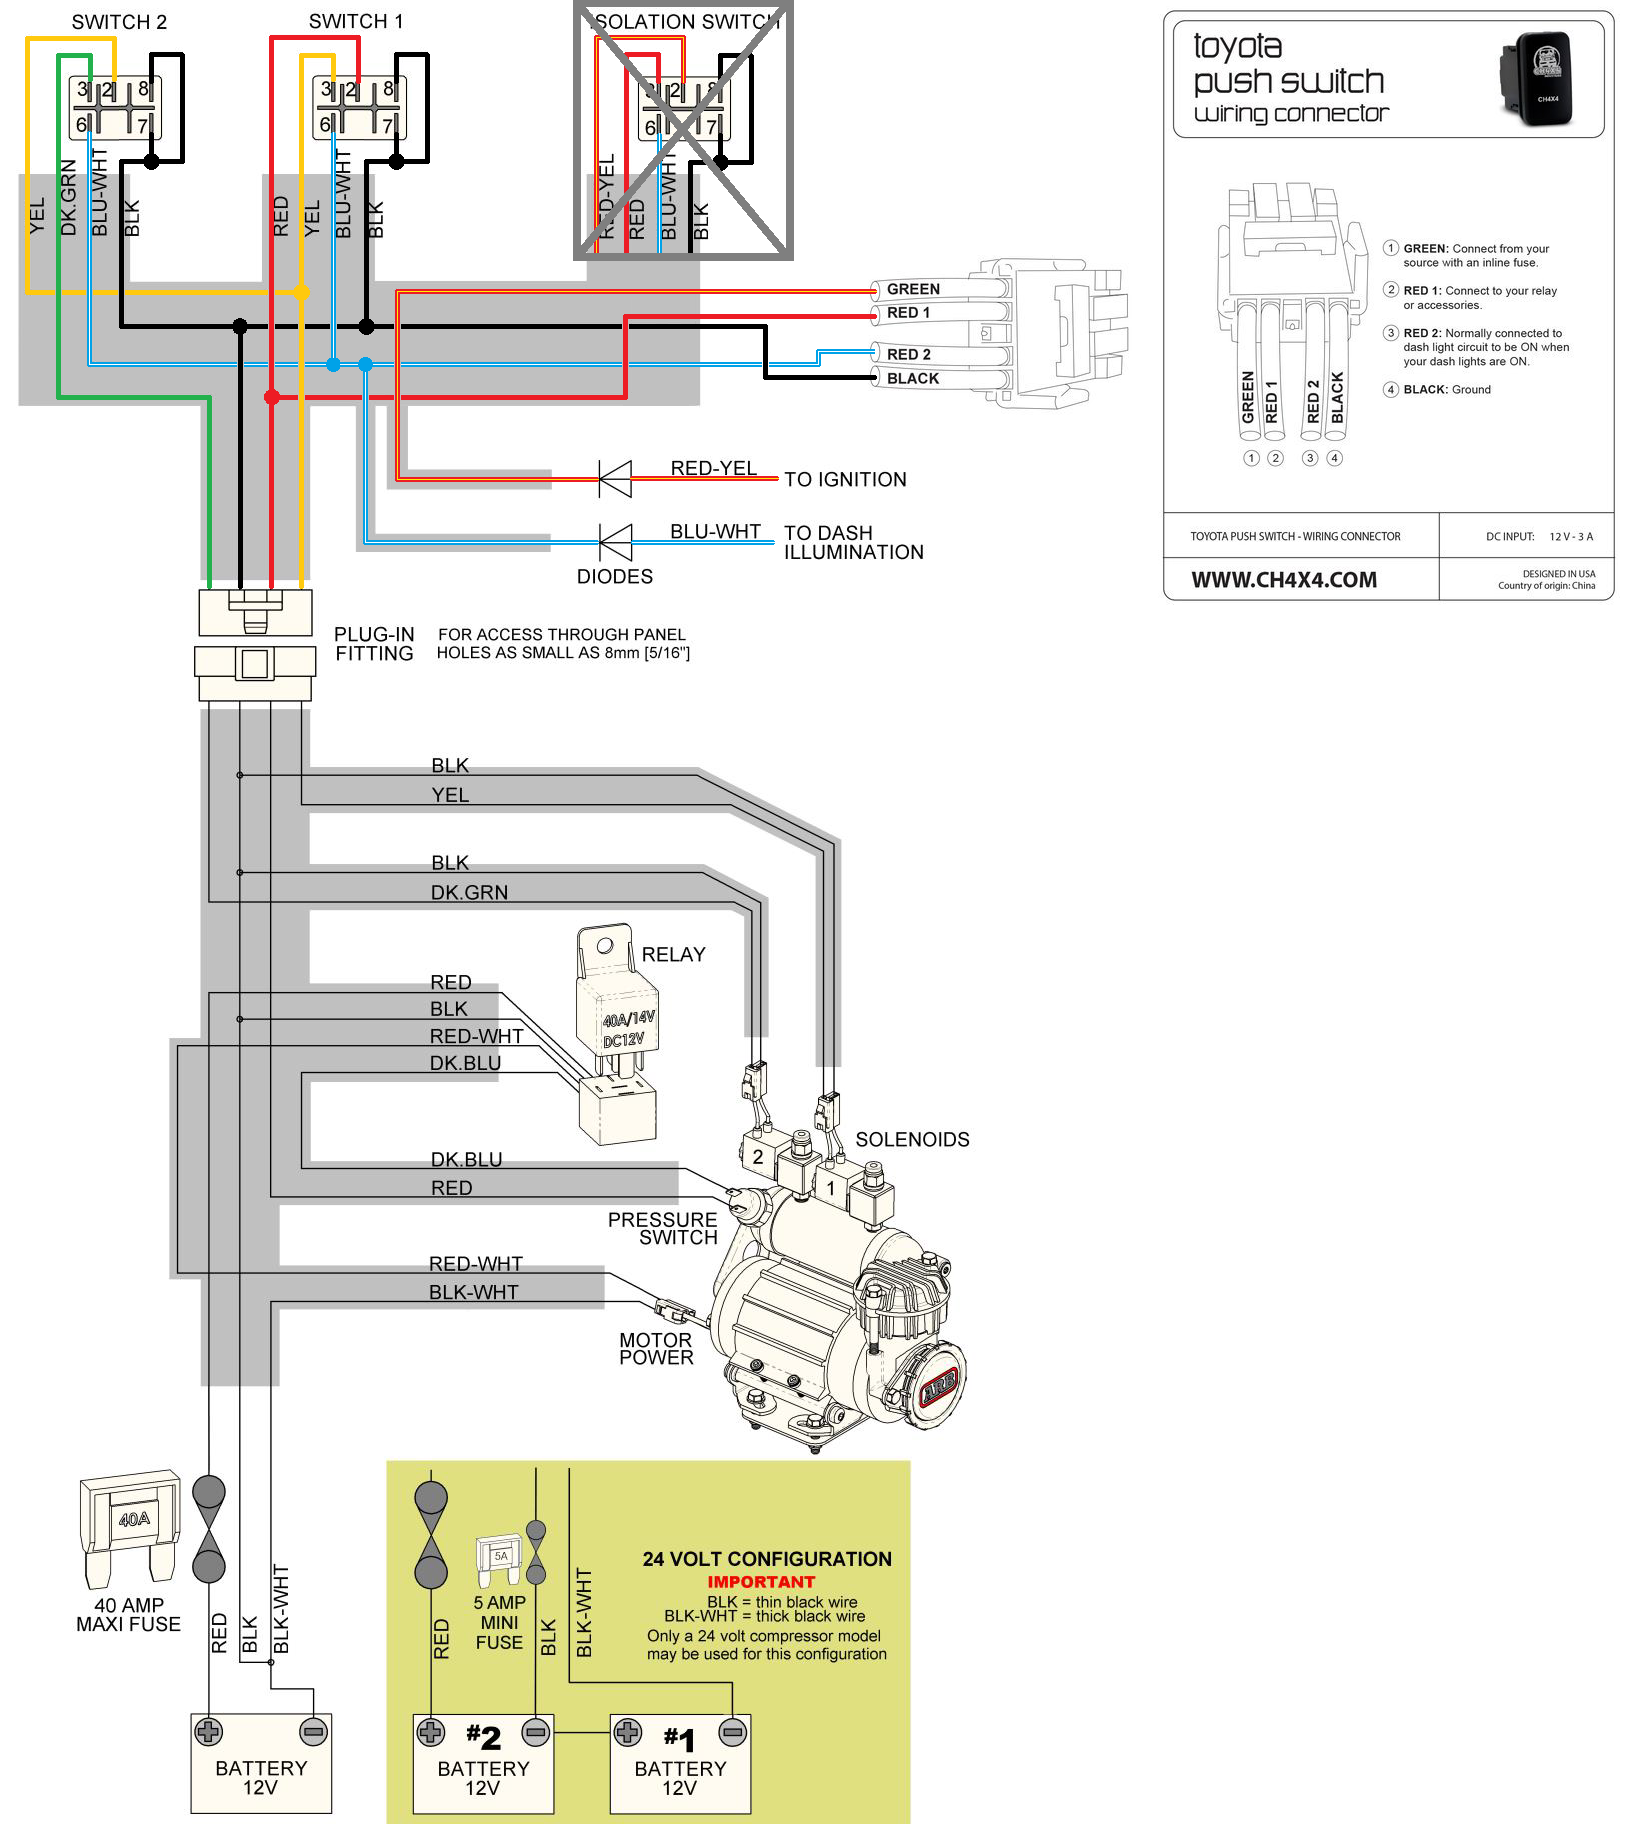 wiring arb compressor switch wiring diagrams rigid industries switch wiring  diagram arb ckma12 engine install toyota